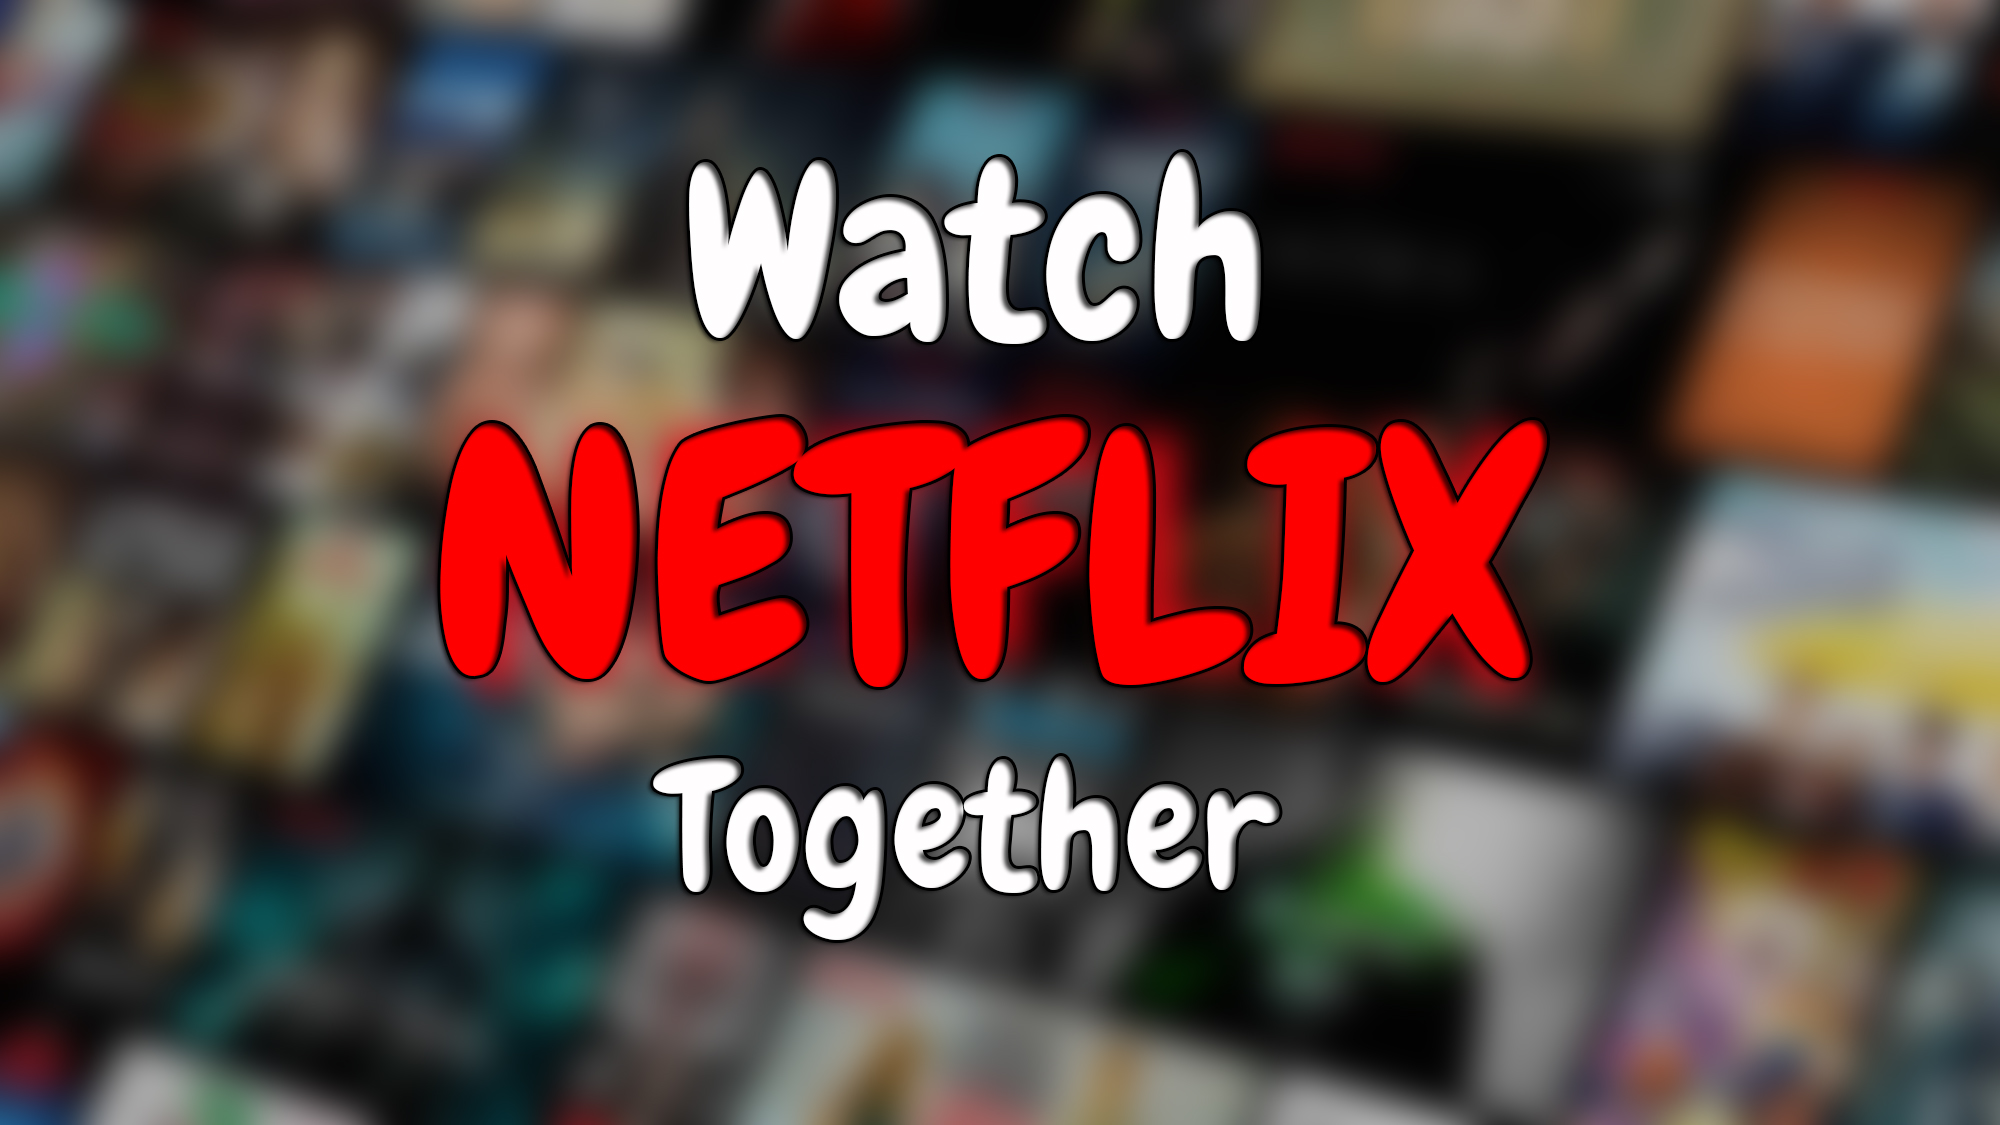 Watch Netflix Together